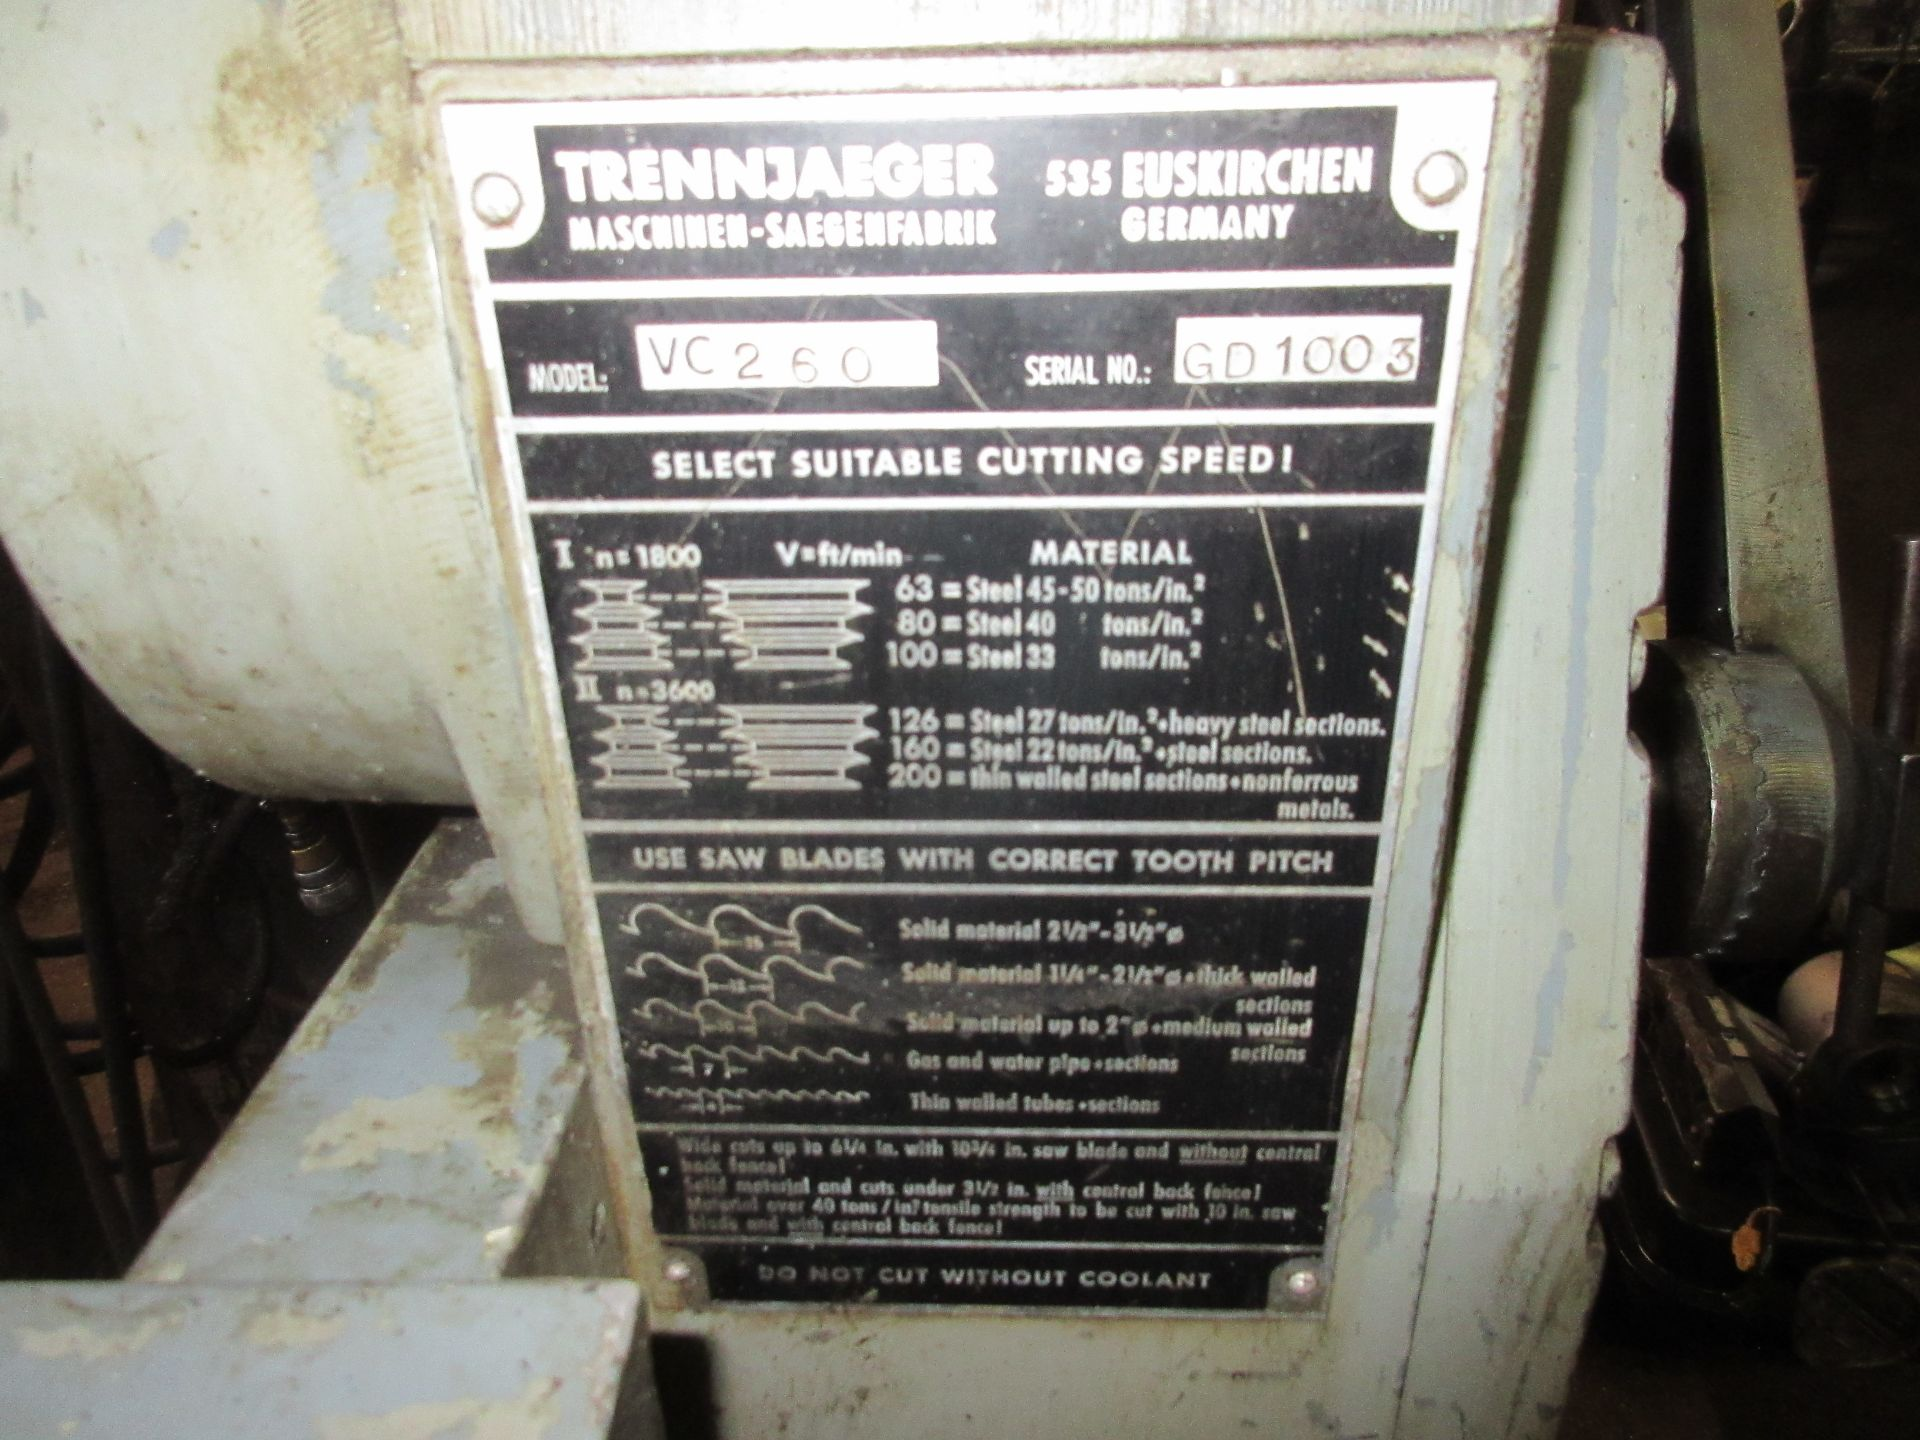 (1) Trennjaeger Promacut VC260 Cut Off Saw S/N GD1003 - Image 2 of 3